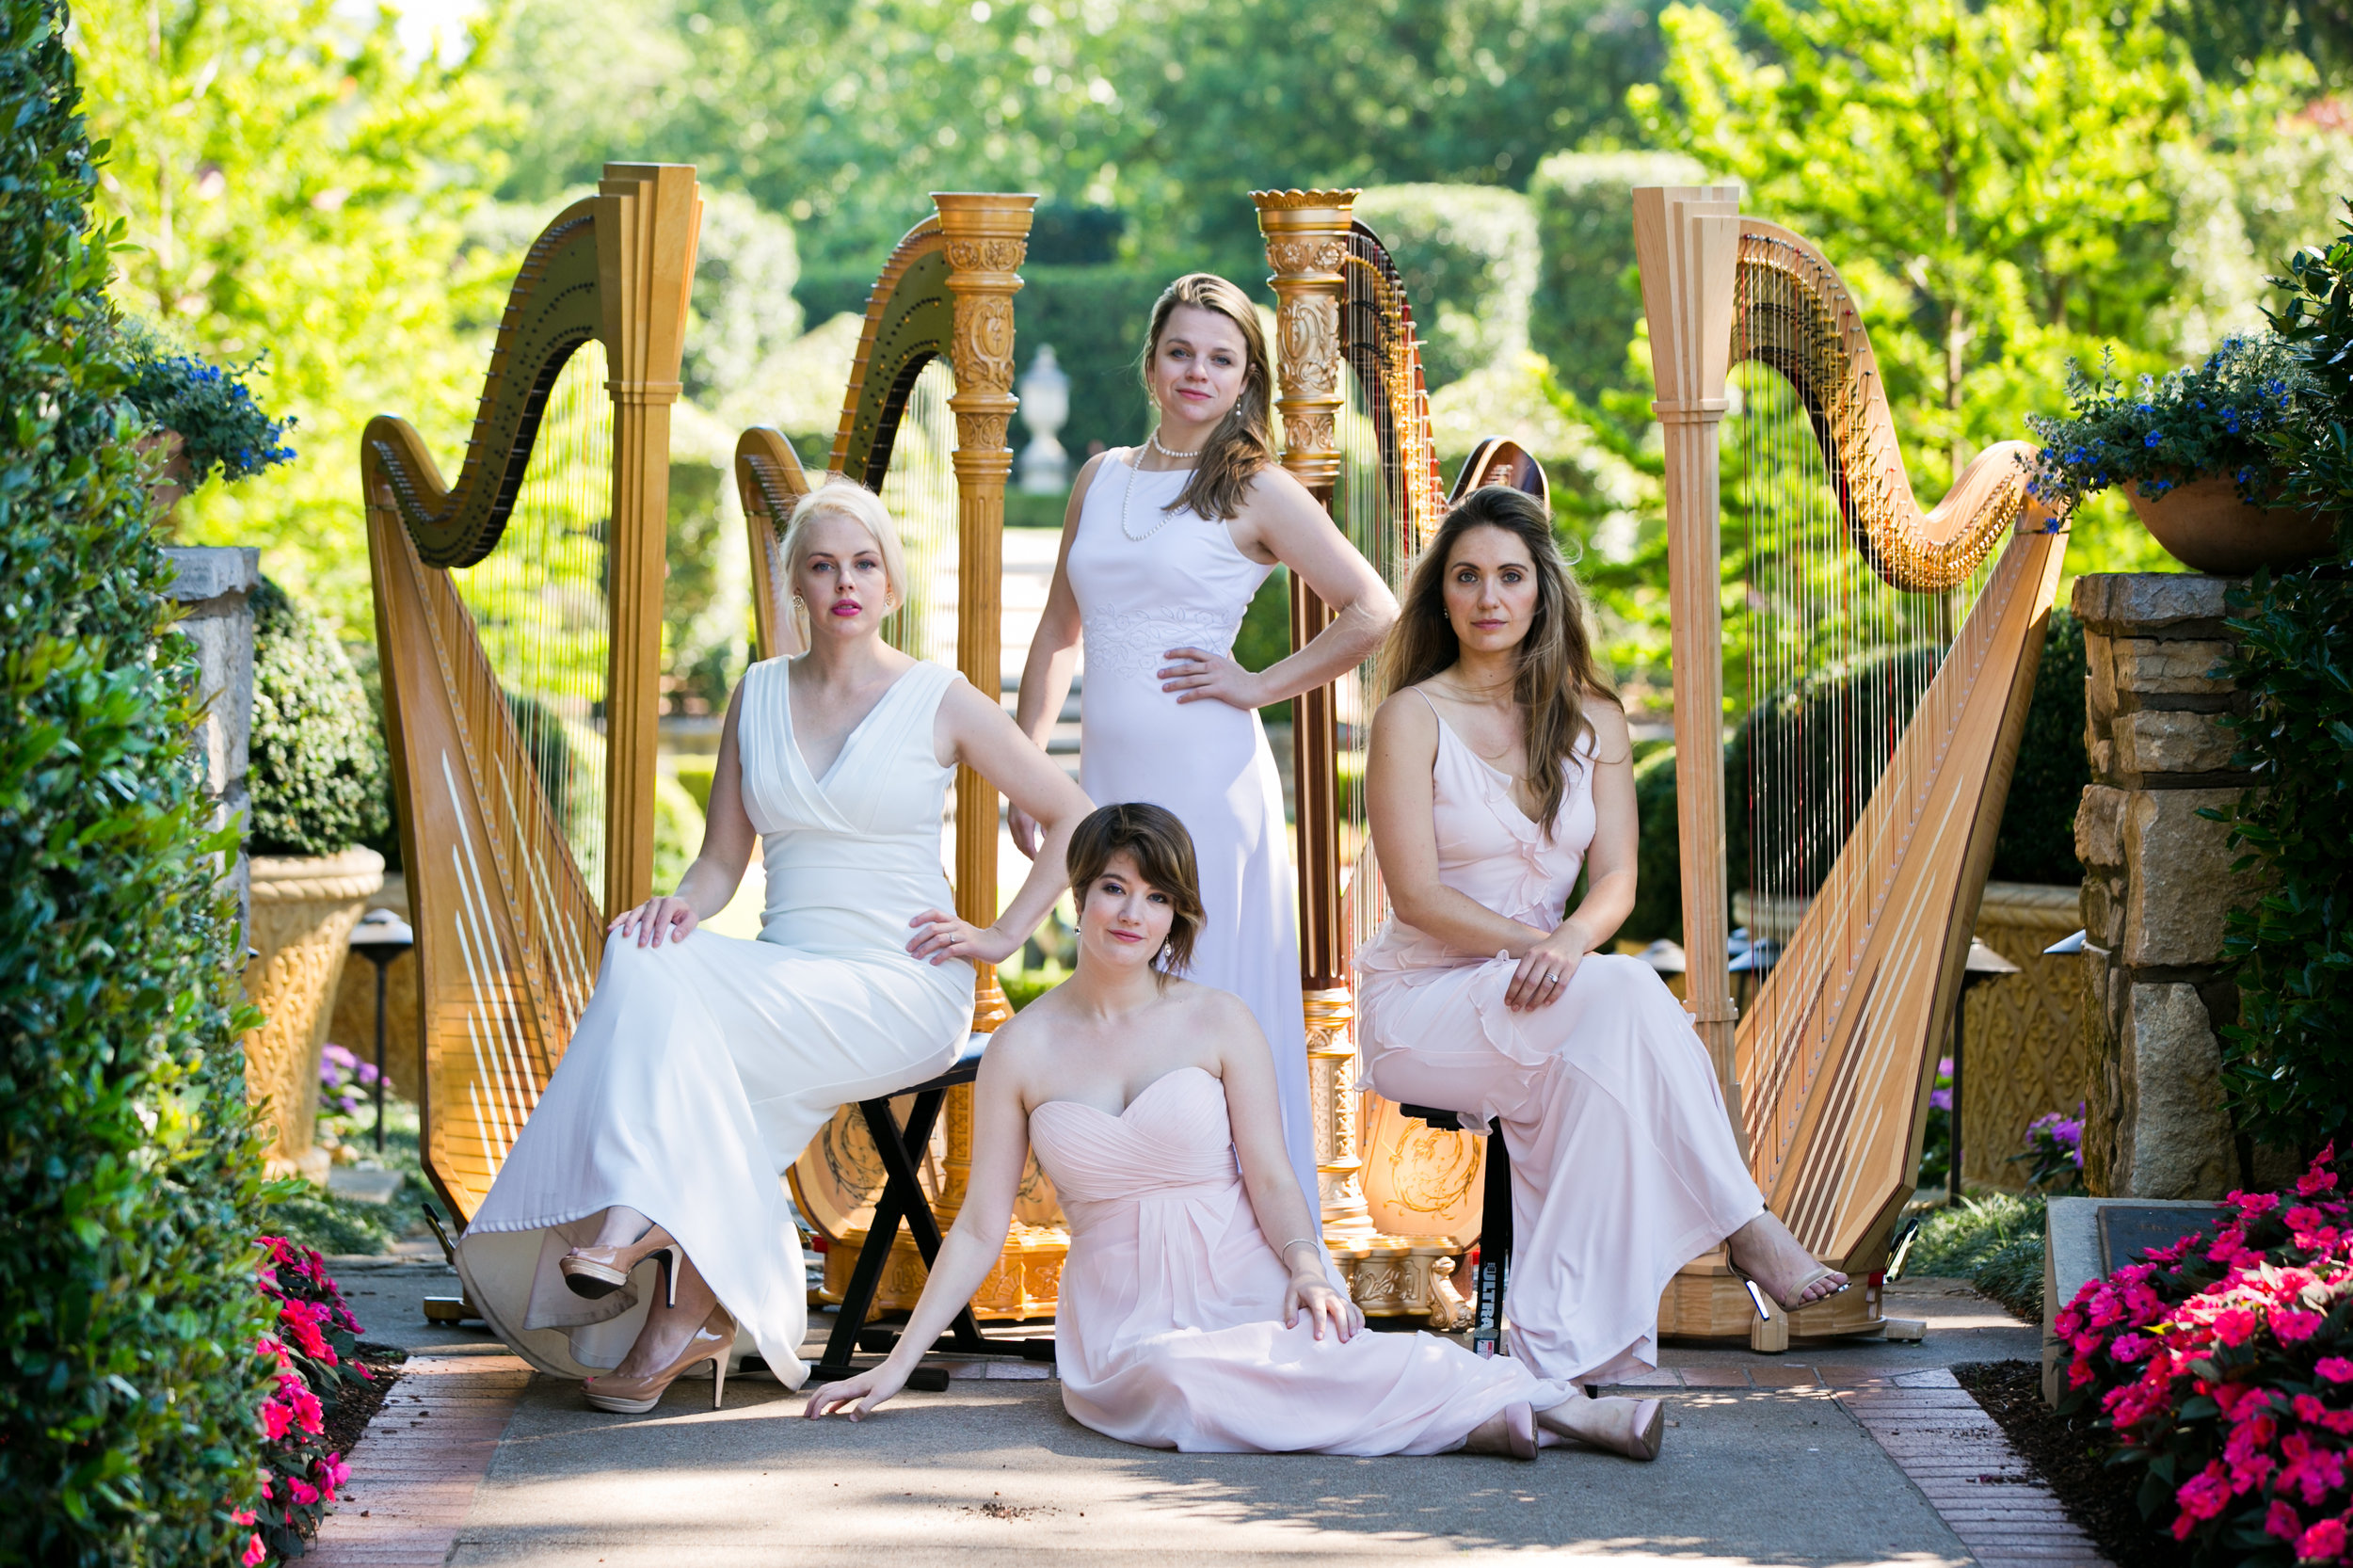 2017: The Dallas Harp Quartet